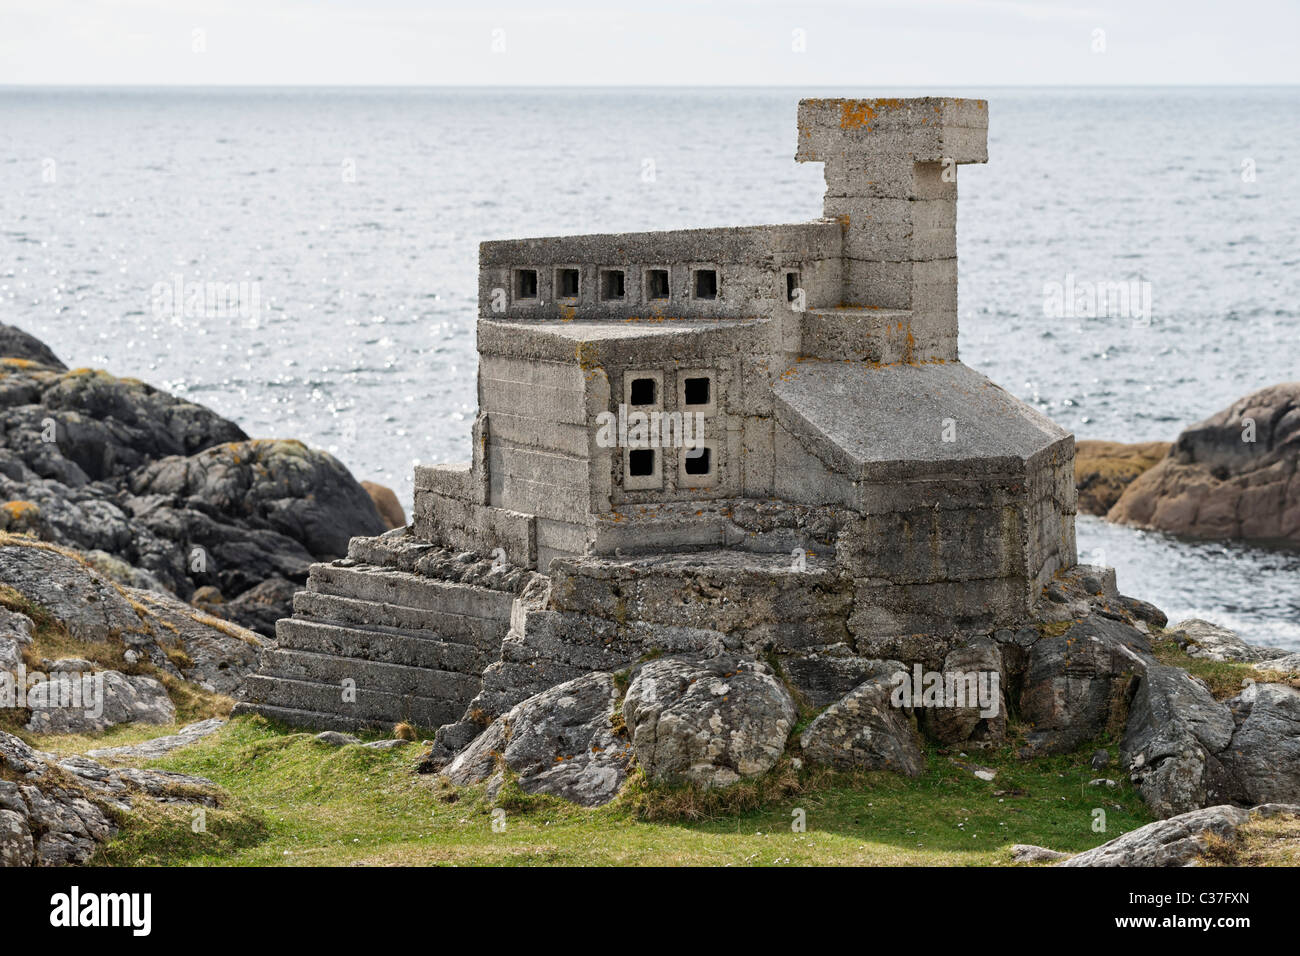 """The """"Hermit's"""" Castle at Achmelvich, Assynt, Sutherland, Highland, Scotland, UK. Stock Photo"""